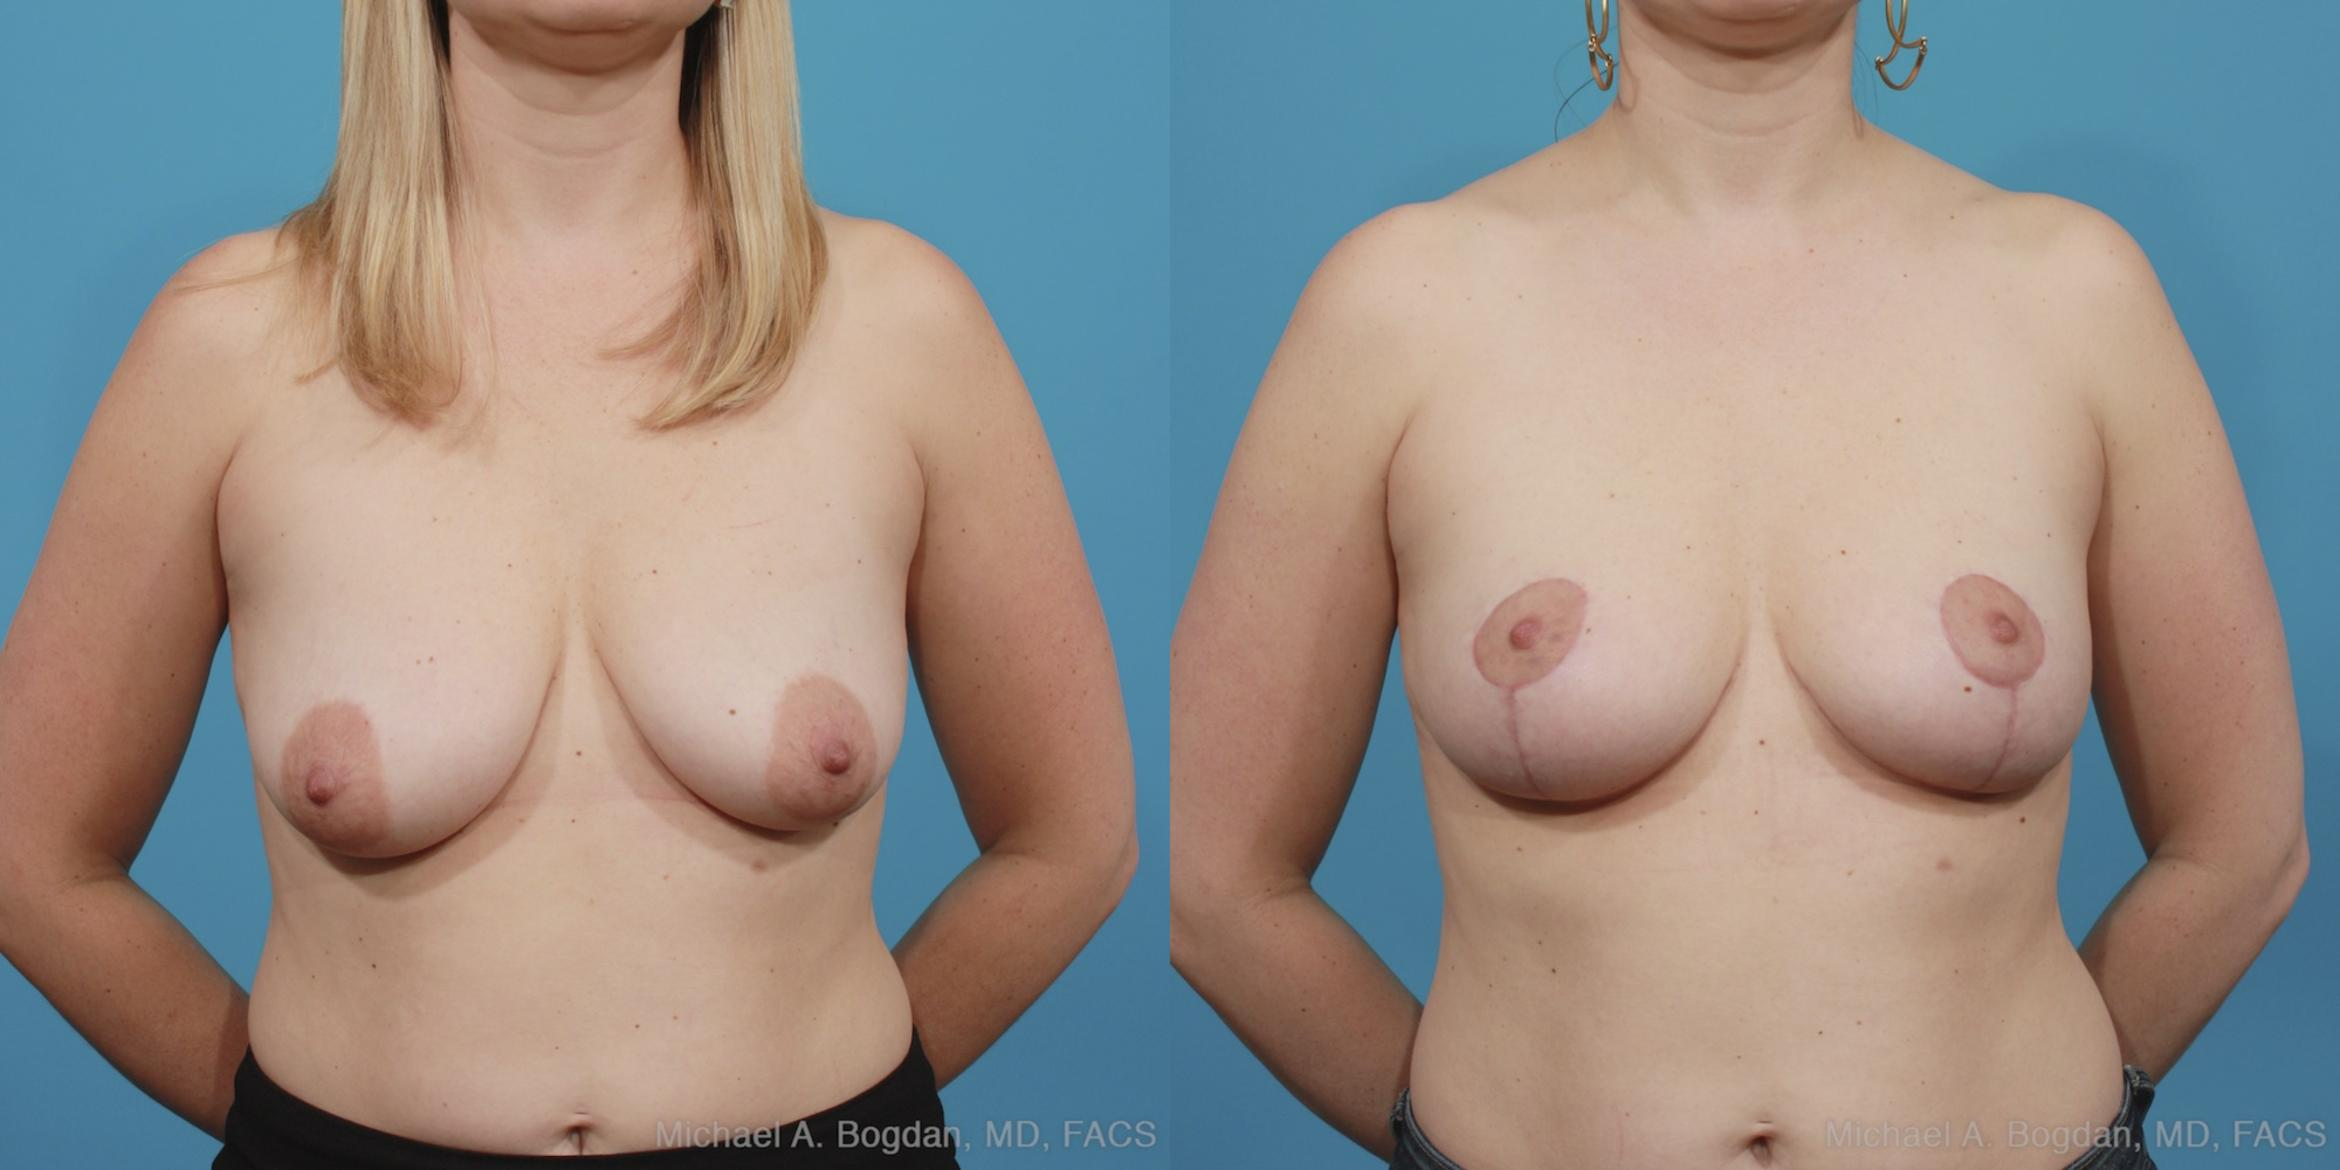 Mastopexy & Augmentation Case 404 Before & After View #4 | Fort Worth & Frisco, Texas | Michael A. Bogdan, MD, FACS